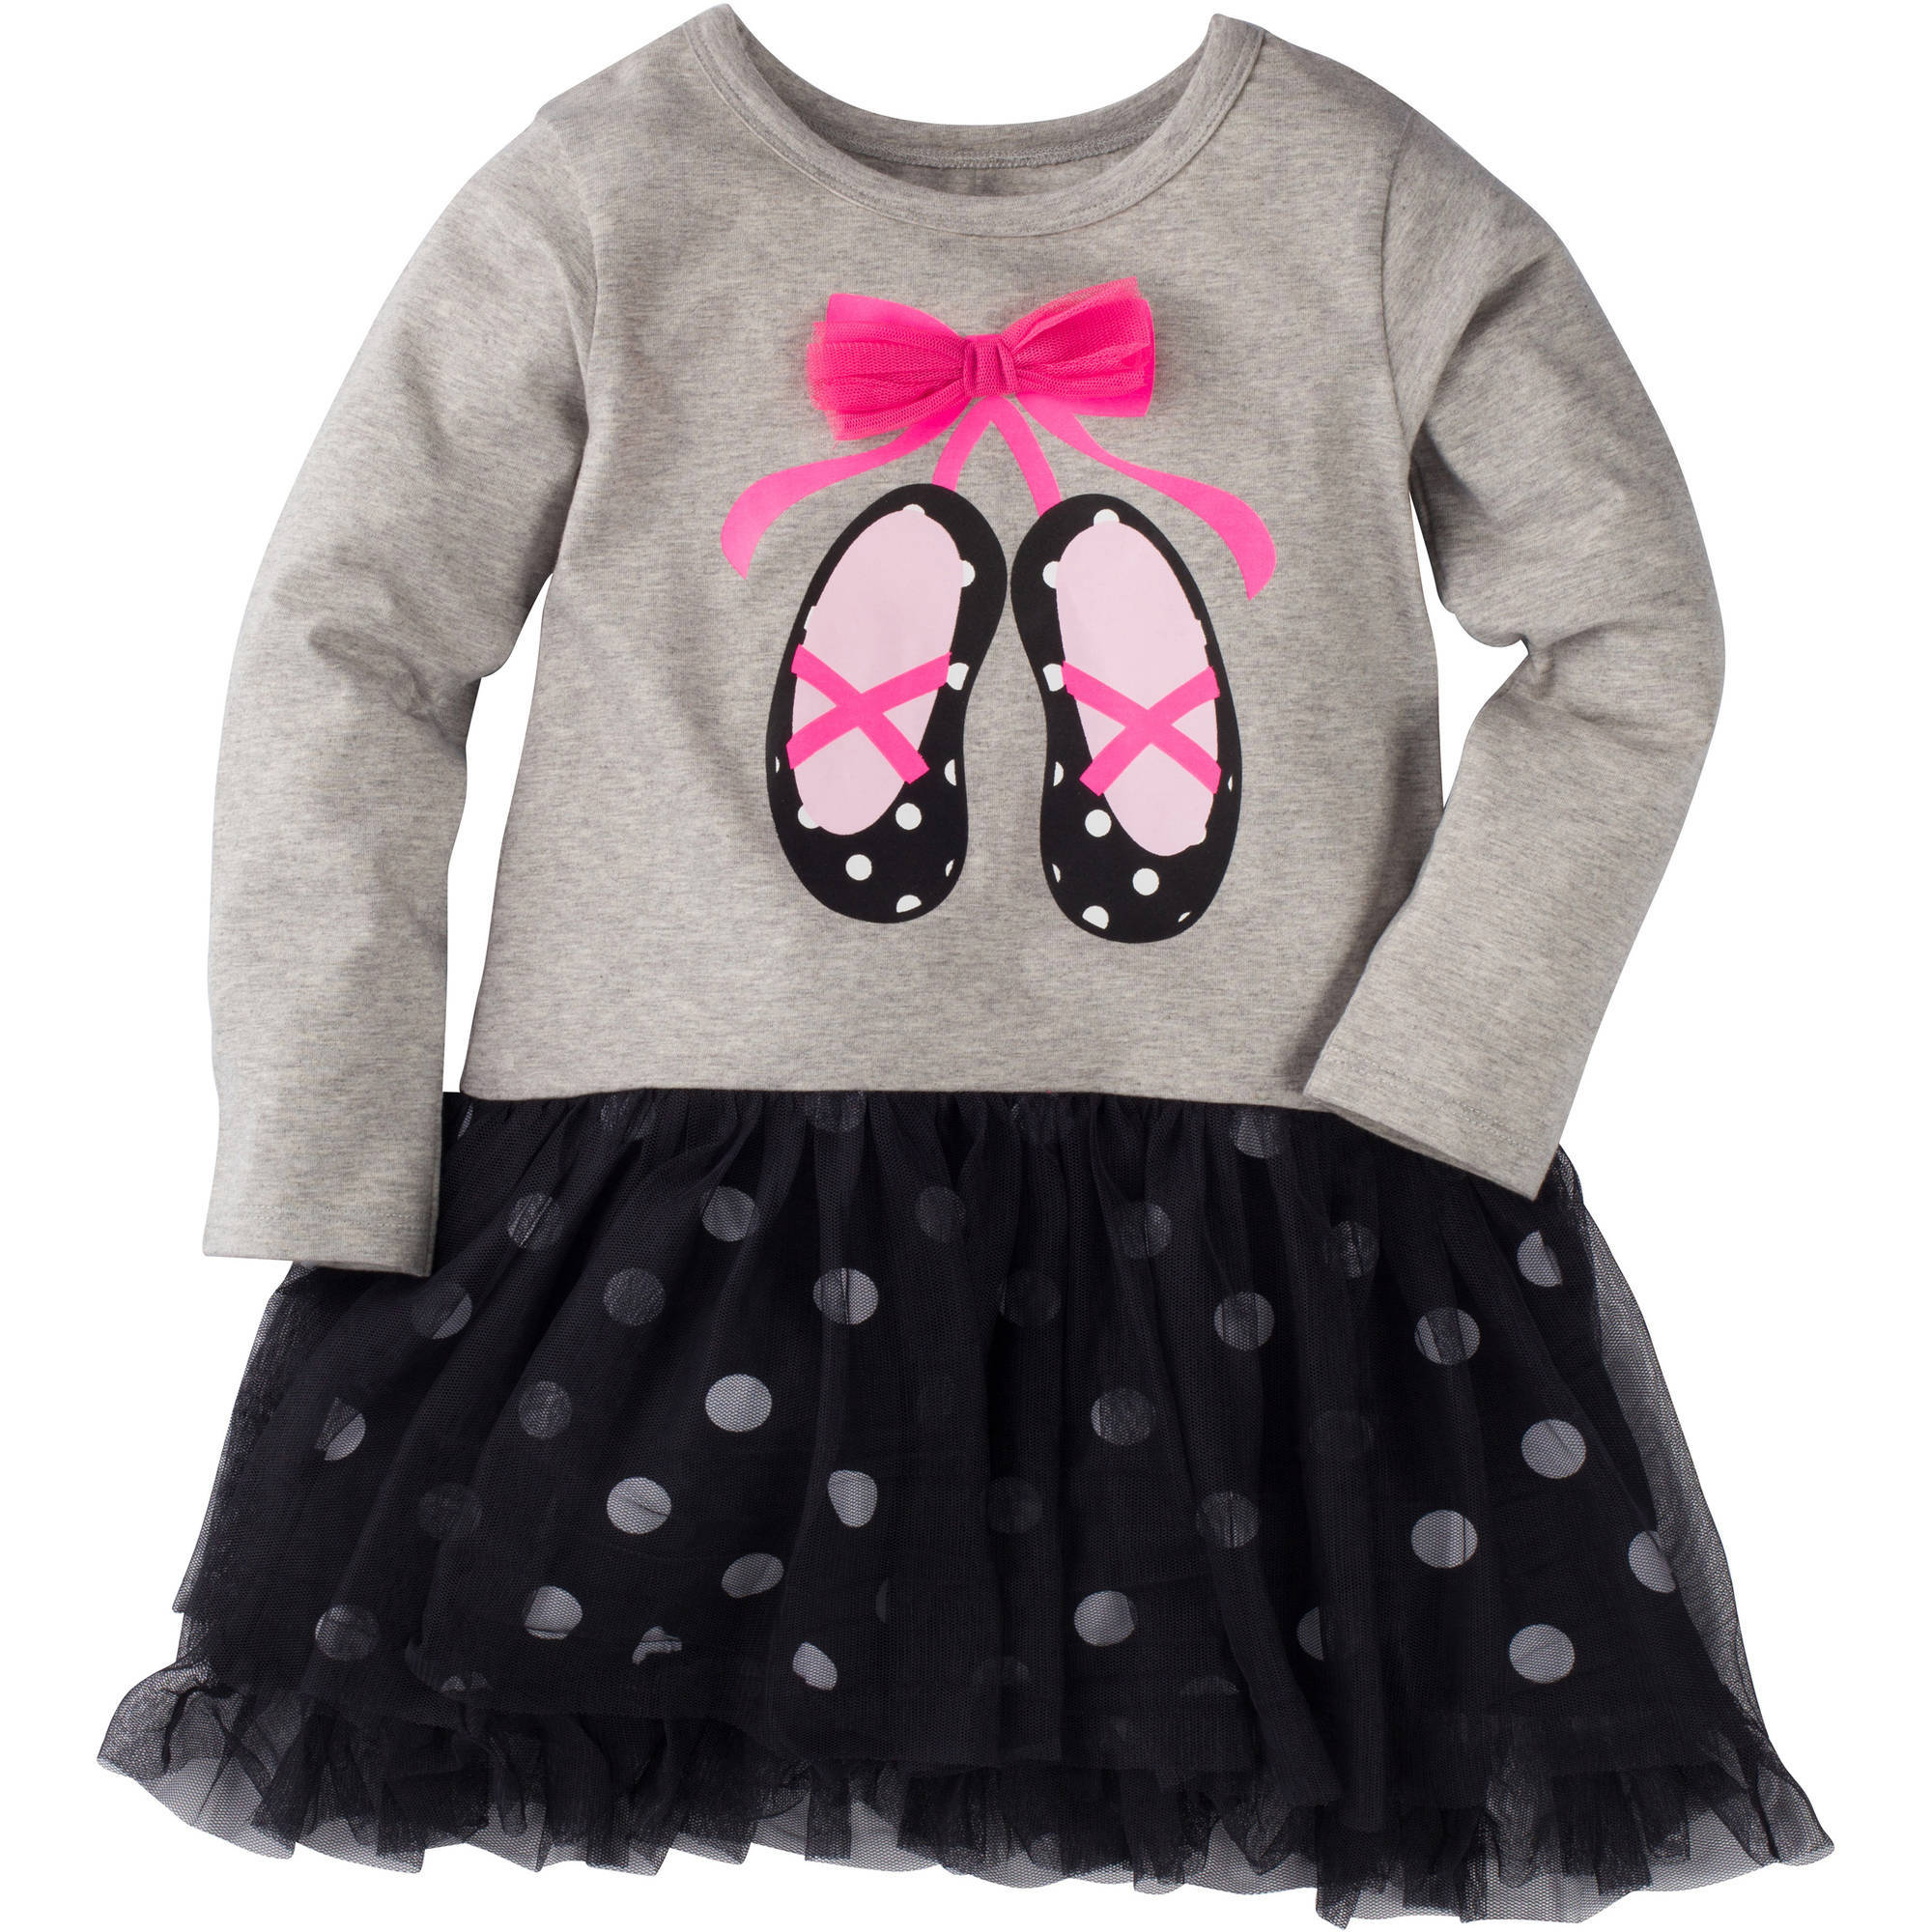 Gerber Graduates Infant Toddler Girl Tulle Dress with Bow